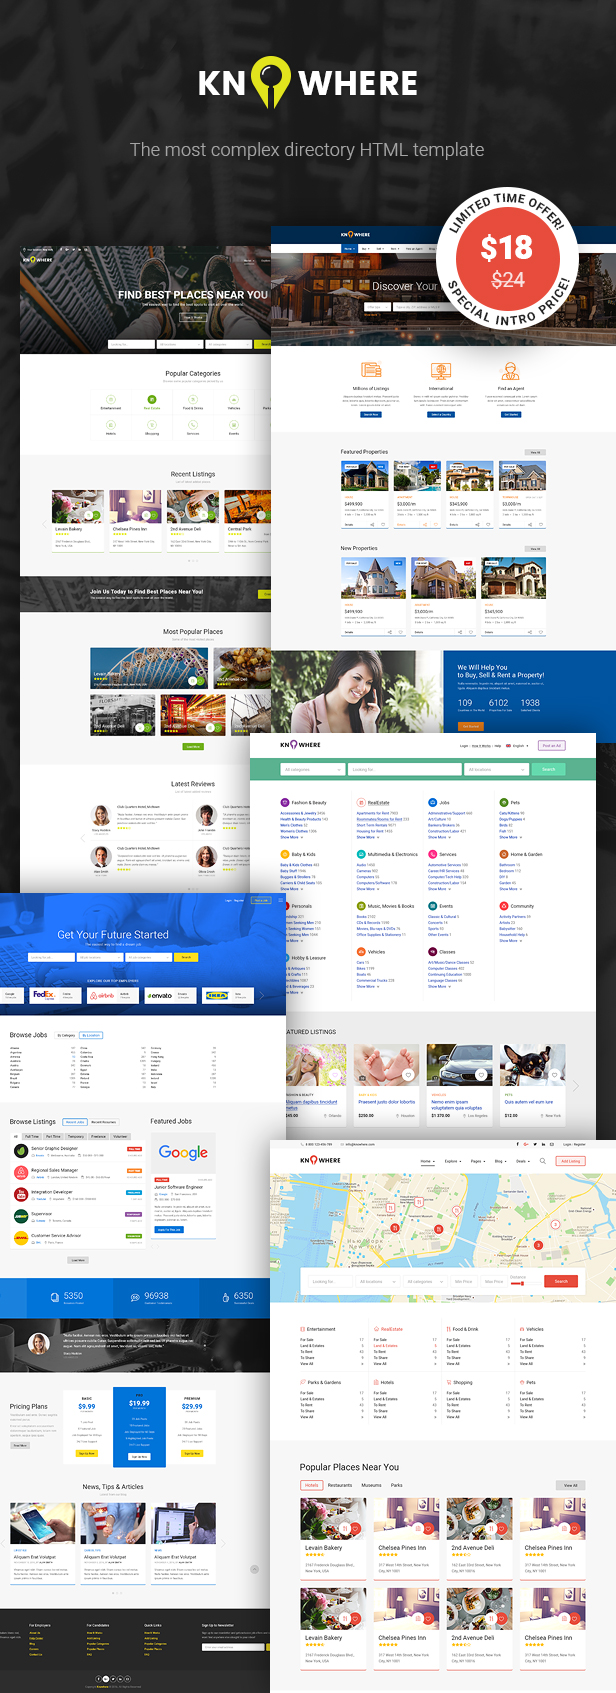 Knowhere - Multipurpose Directory HTML Template - 1